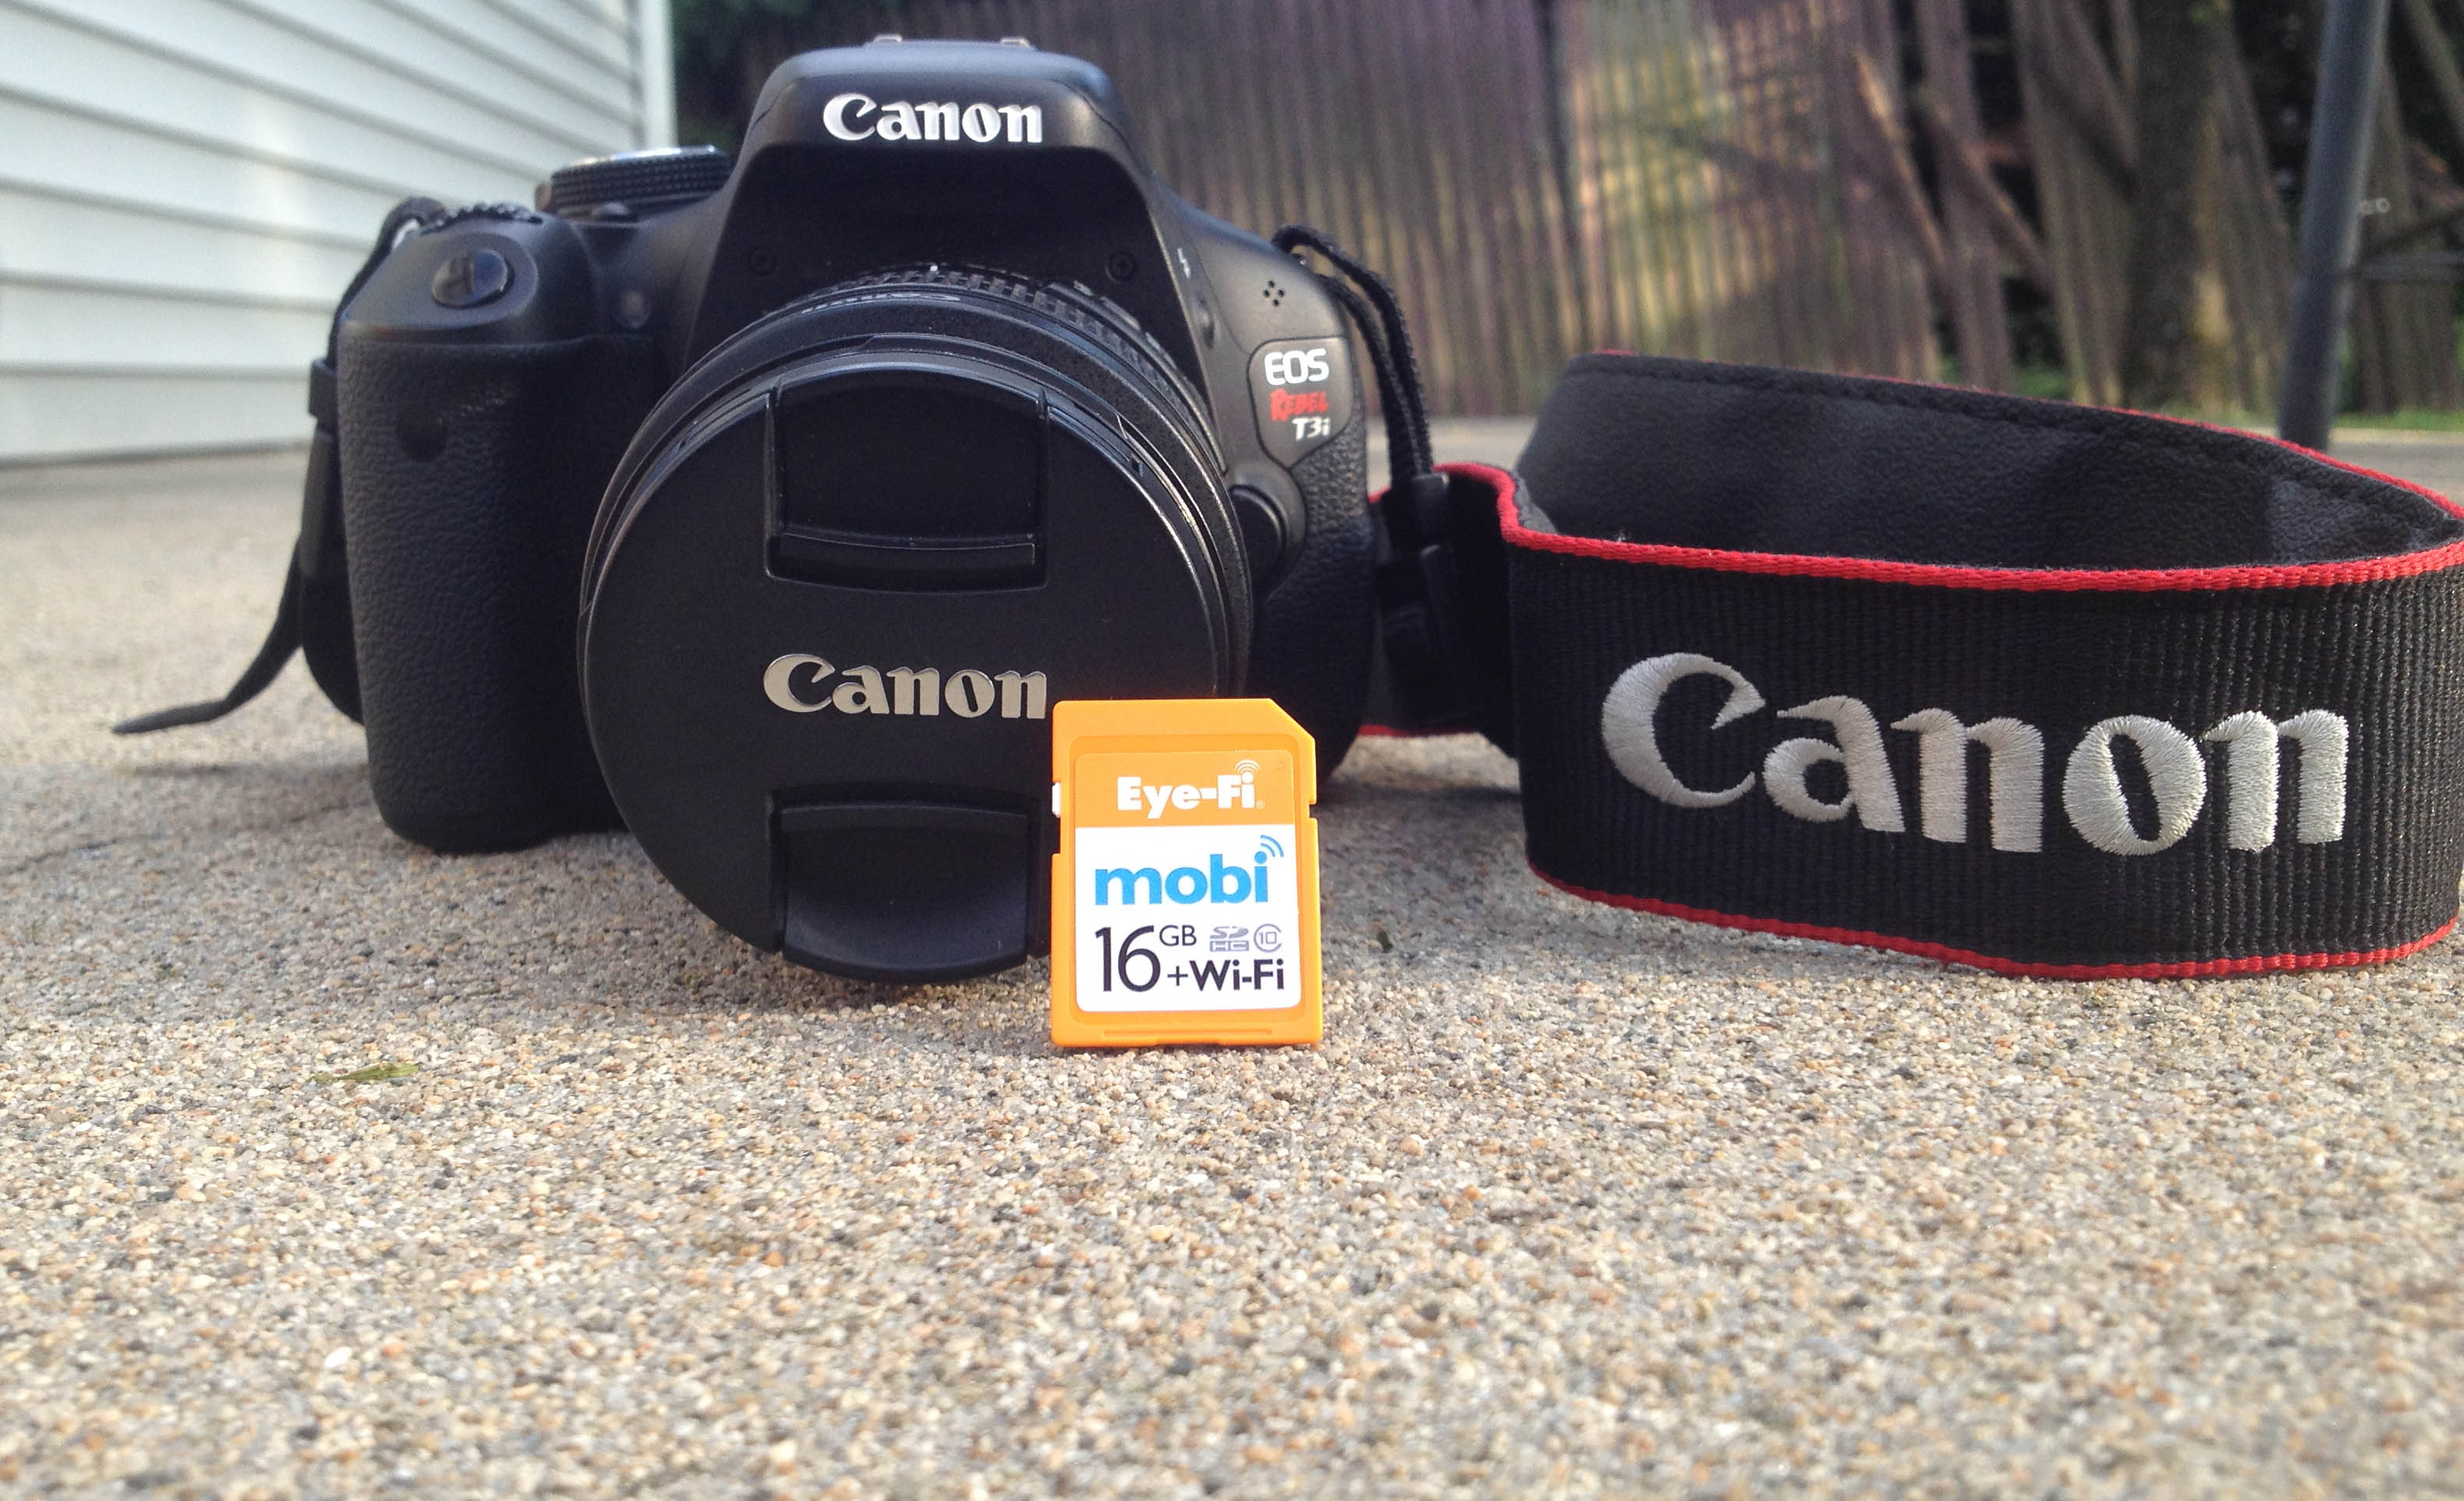 canon eos rebel t3i transfer pictures to iphone